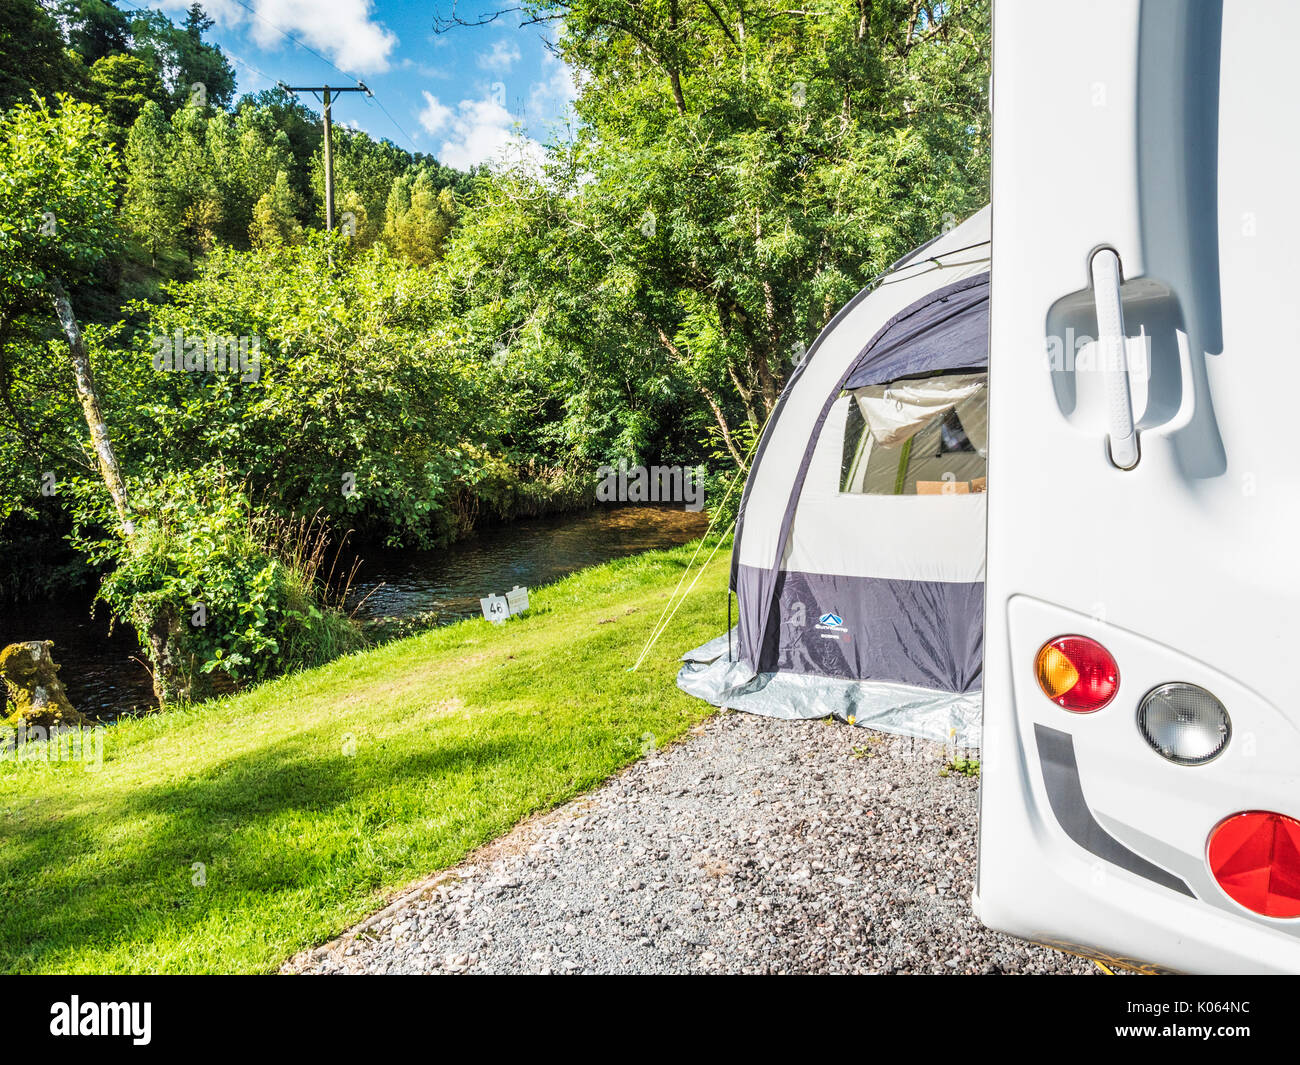 A caravan with a small porch awning pitched along the banks of the River Exe in Exmoor, Somerset. - Stock Image